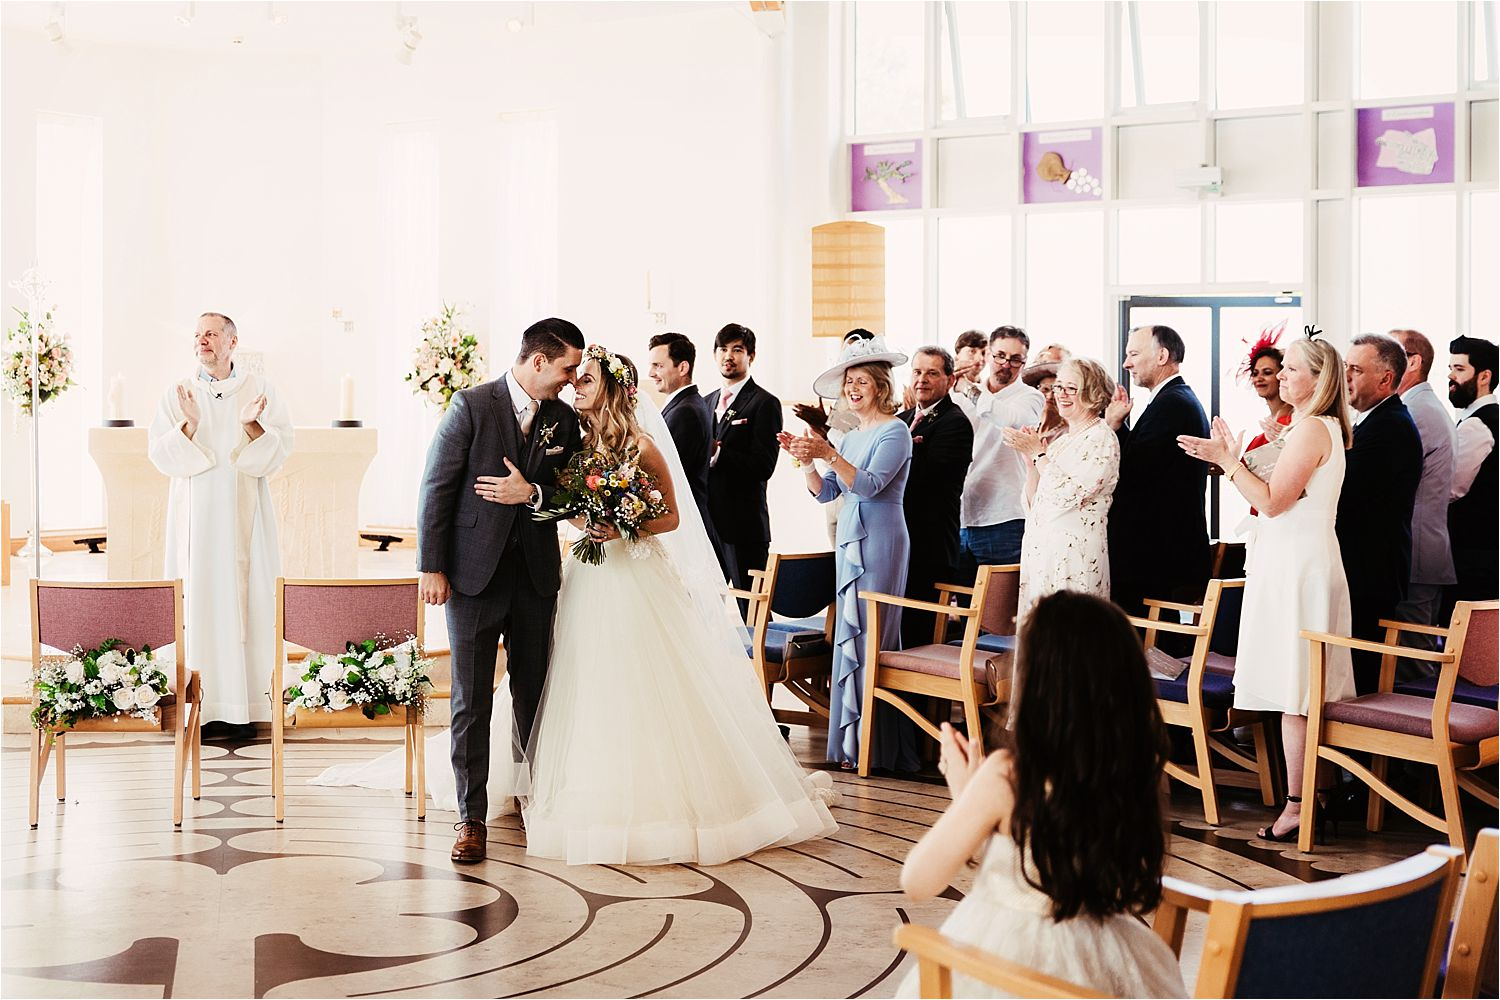 Congregation claps for the newly weds at their Cheshire wedding ceremony